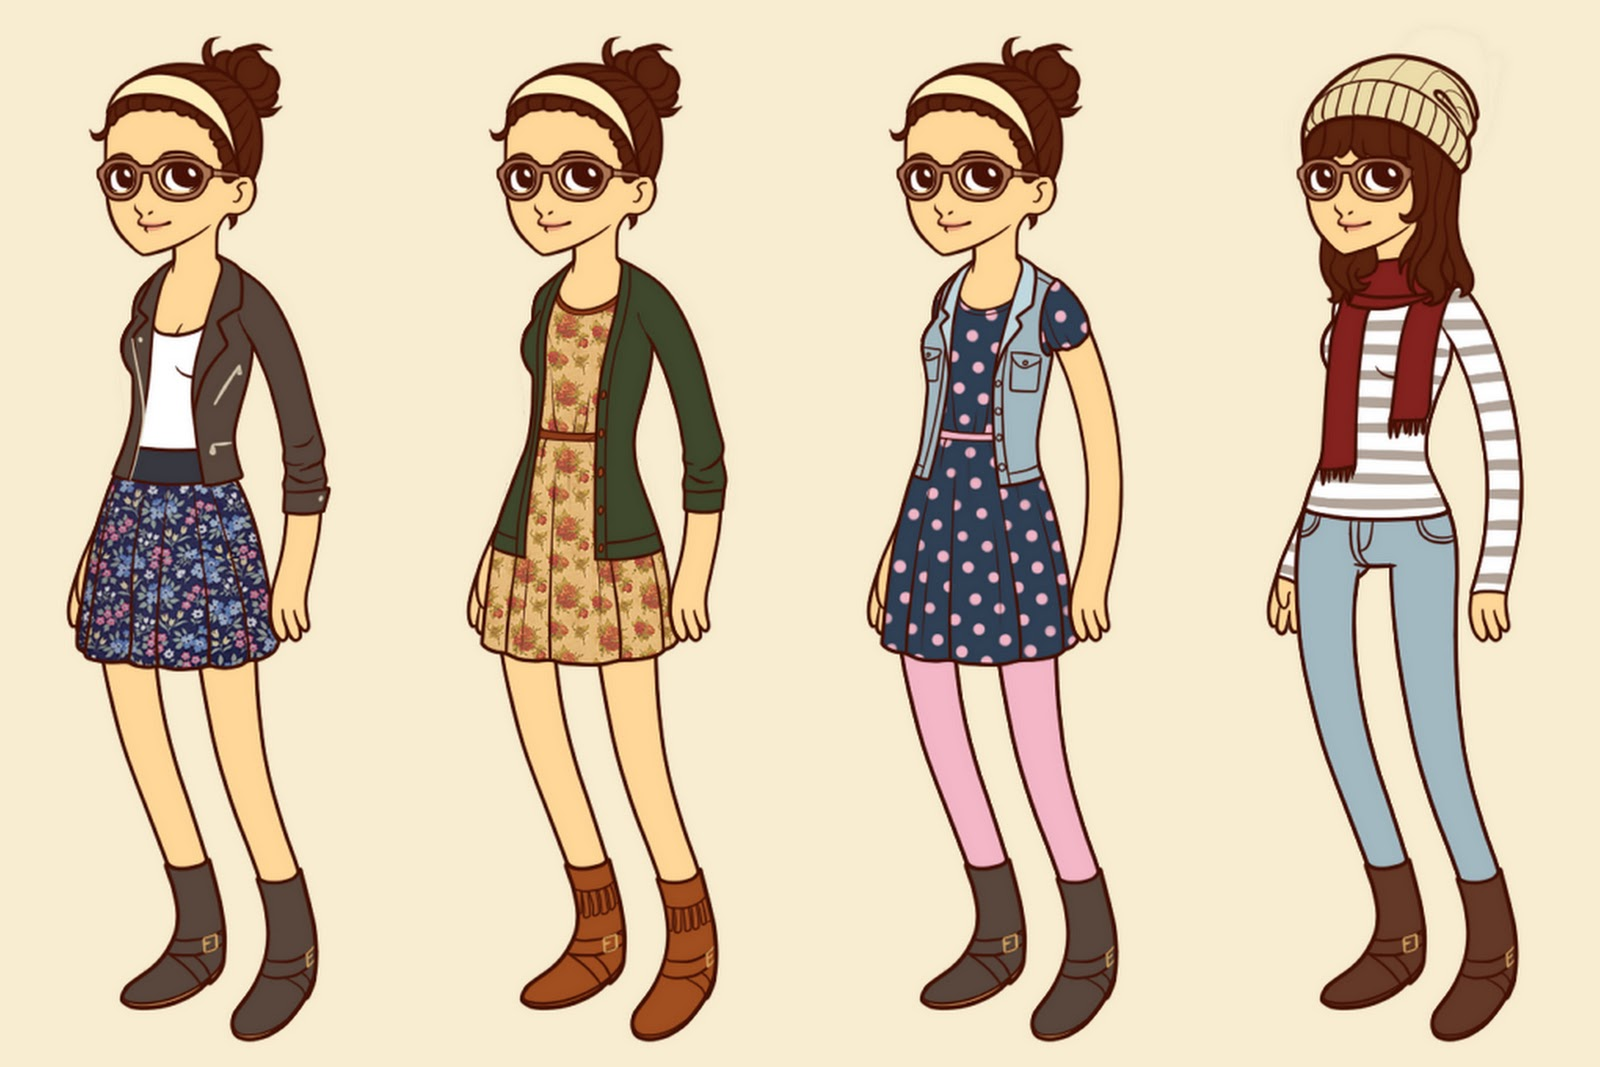 Tumblr Hipster Girls' Outfits